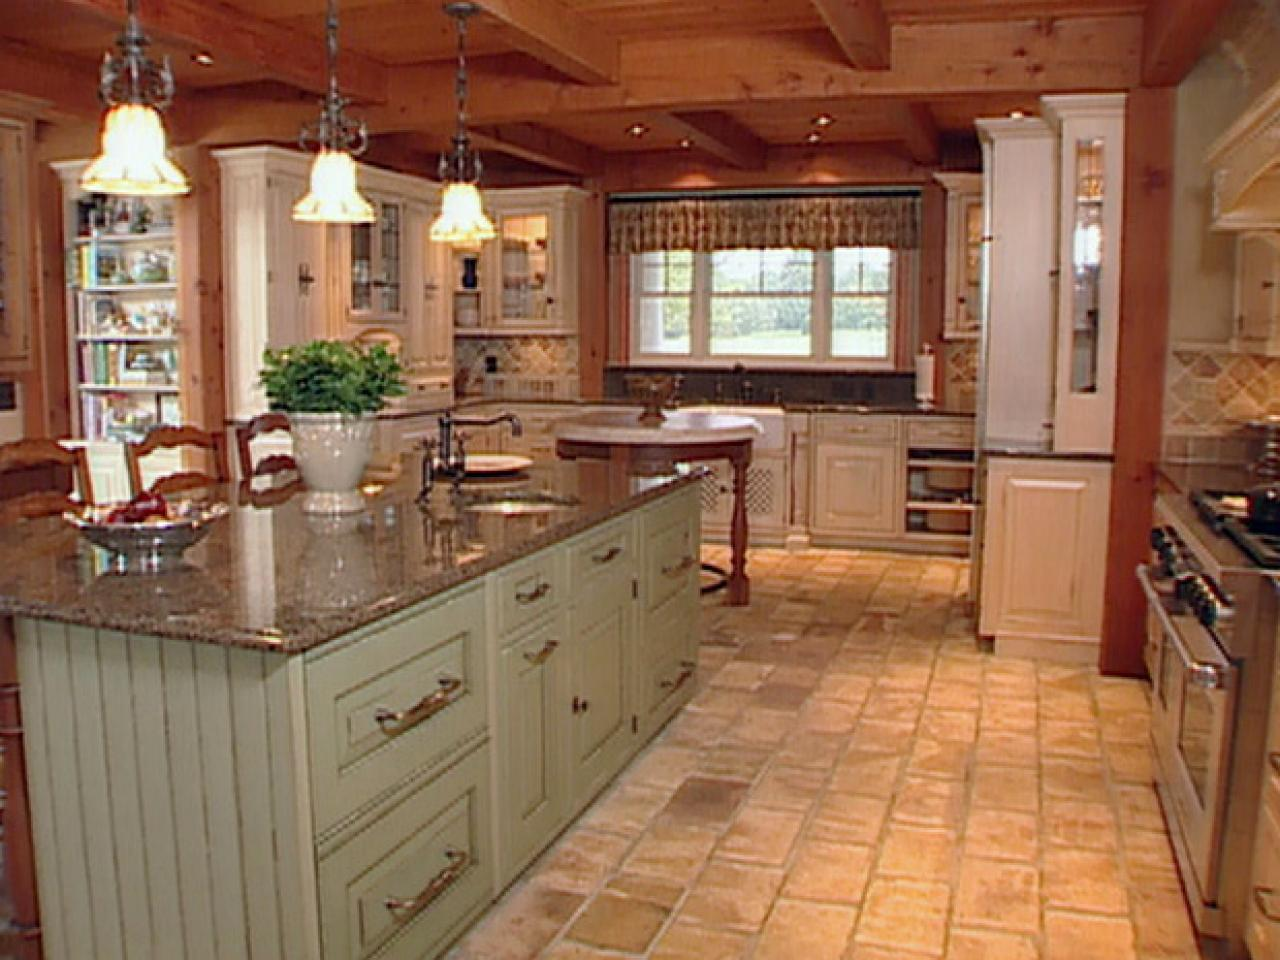 Natural materials create farmhouse kitchen design hgtv - Country style kitchen cabinets design ...